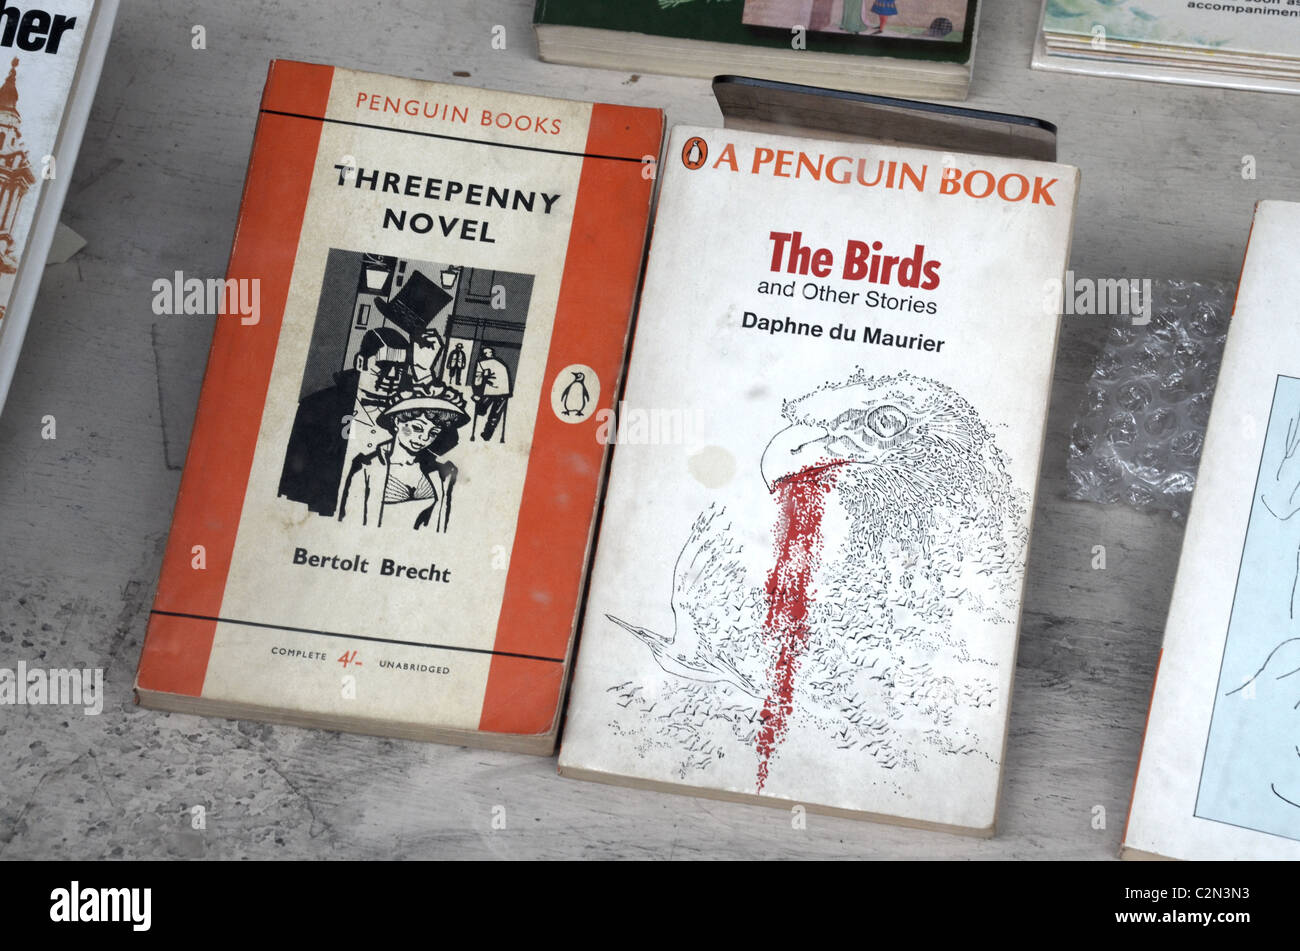 Two vintage Penguin paperbacks by Bertolt Brecht and Daphne du Maurier in a secondhand bookshop window. - Stock Image